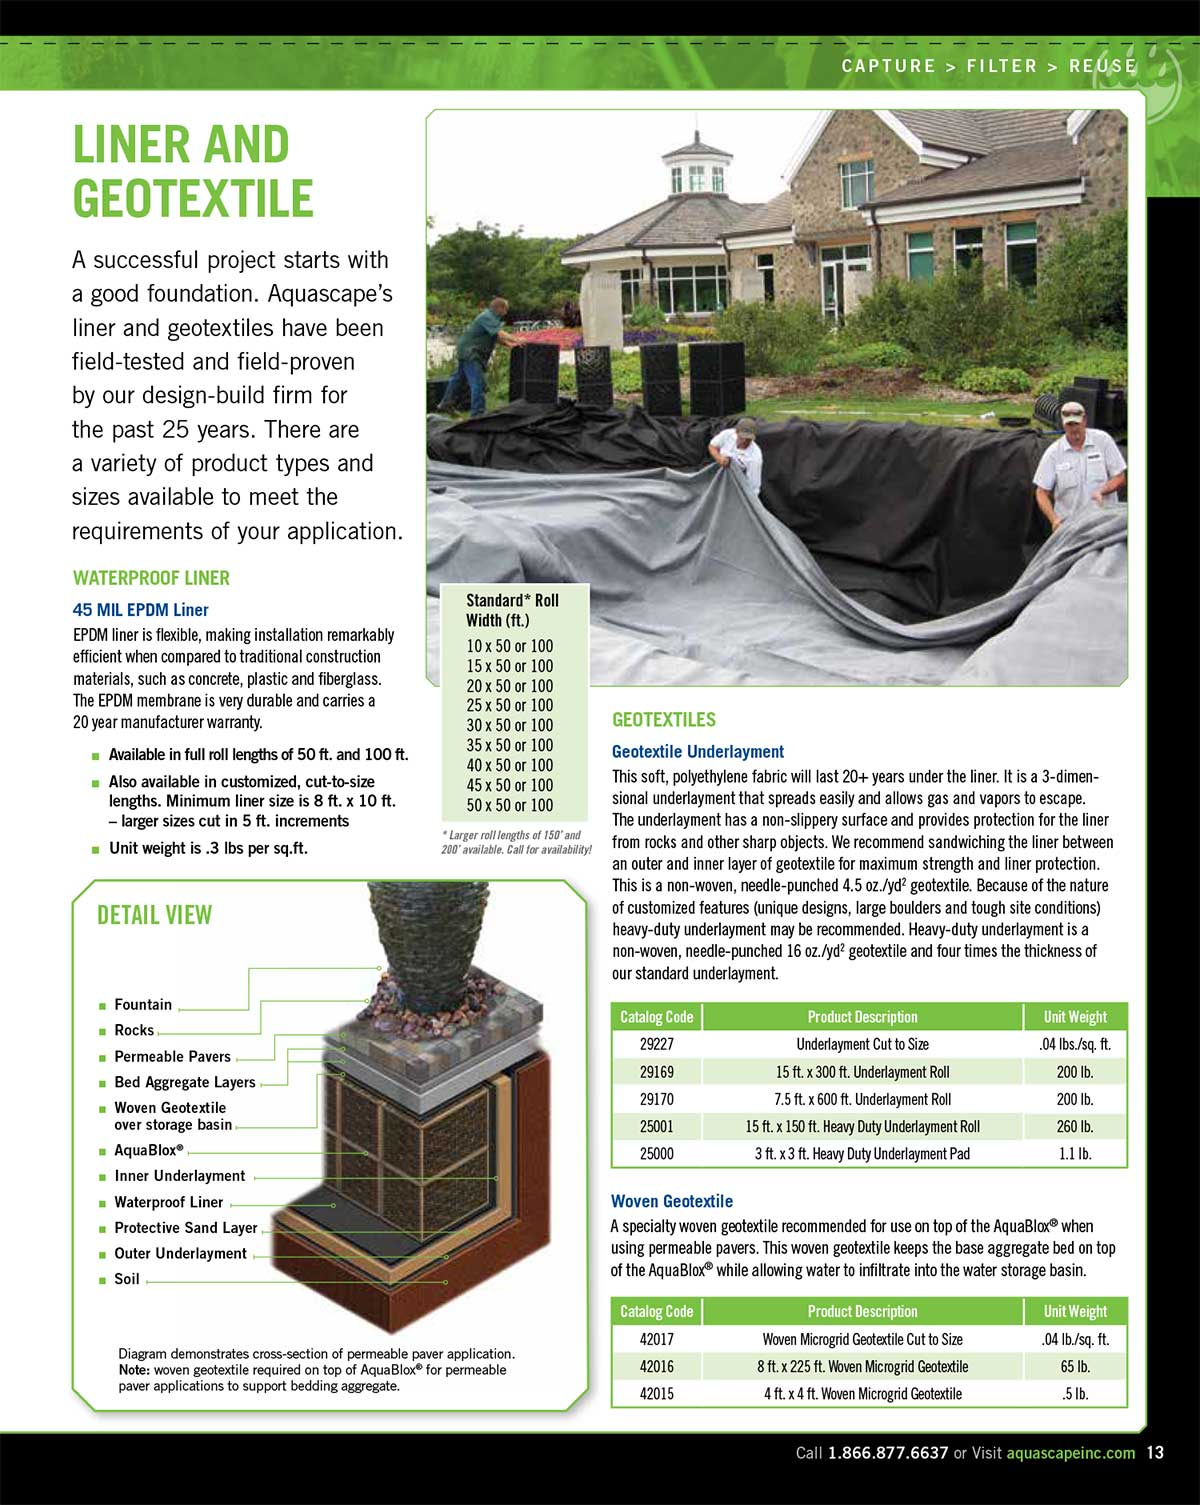 Rainwater collection featuring the Aquascape Rainwater